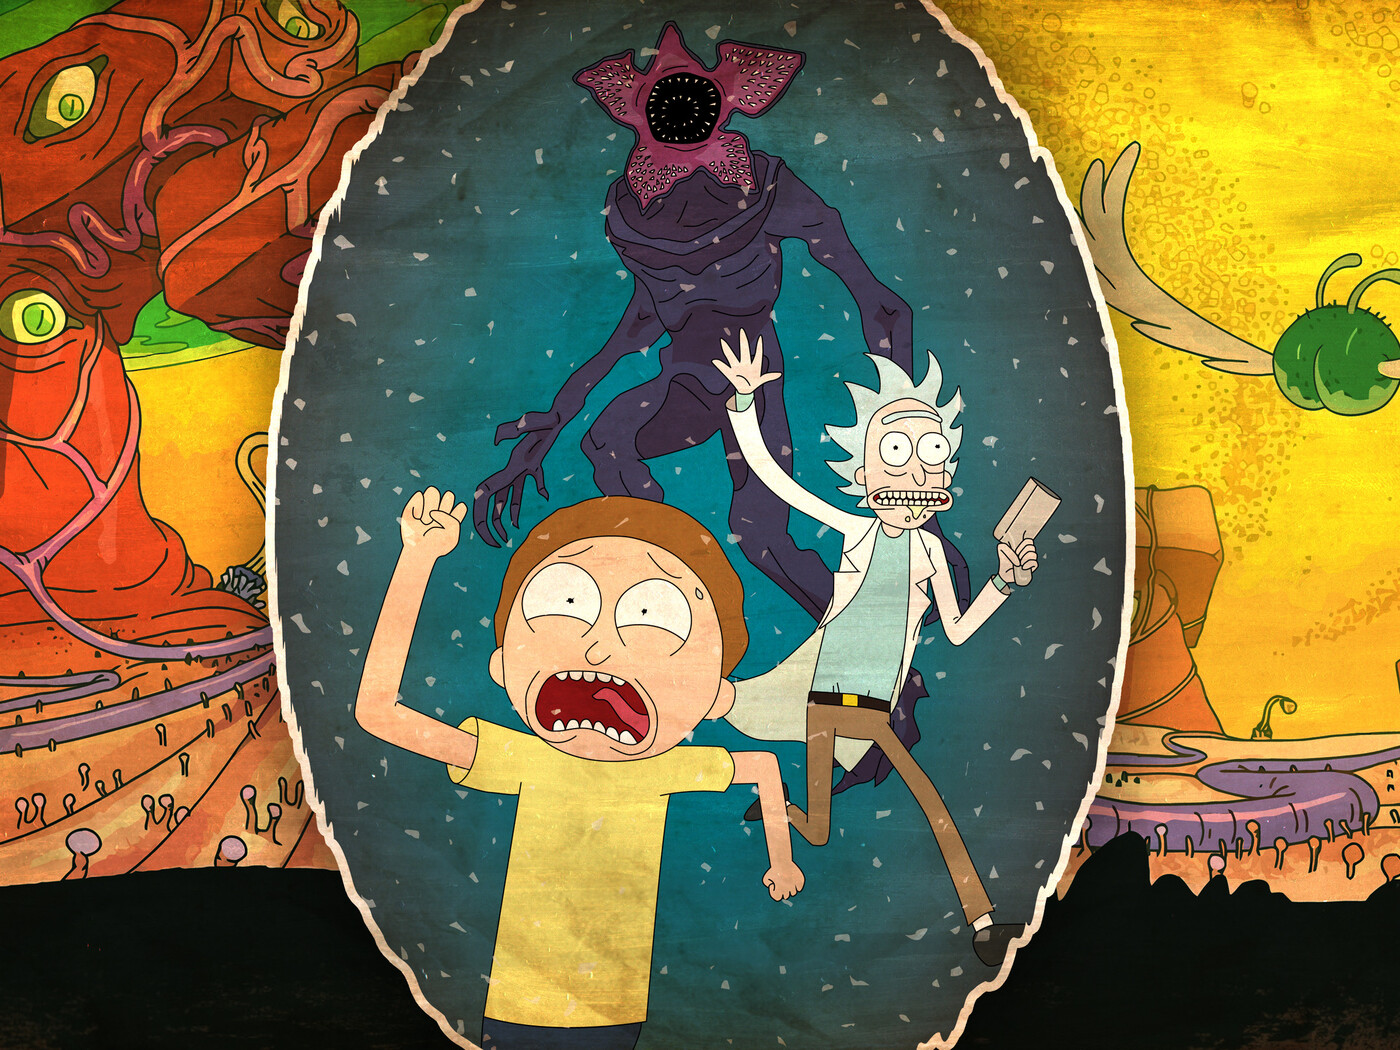 rick-and-morty-4k-zp.jpg